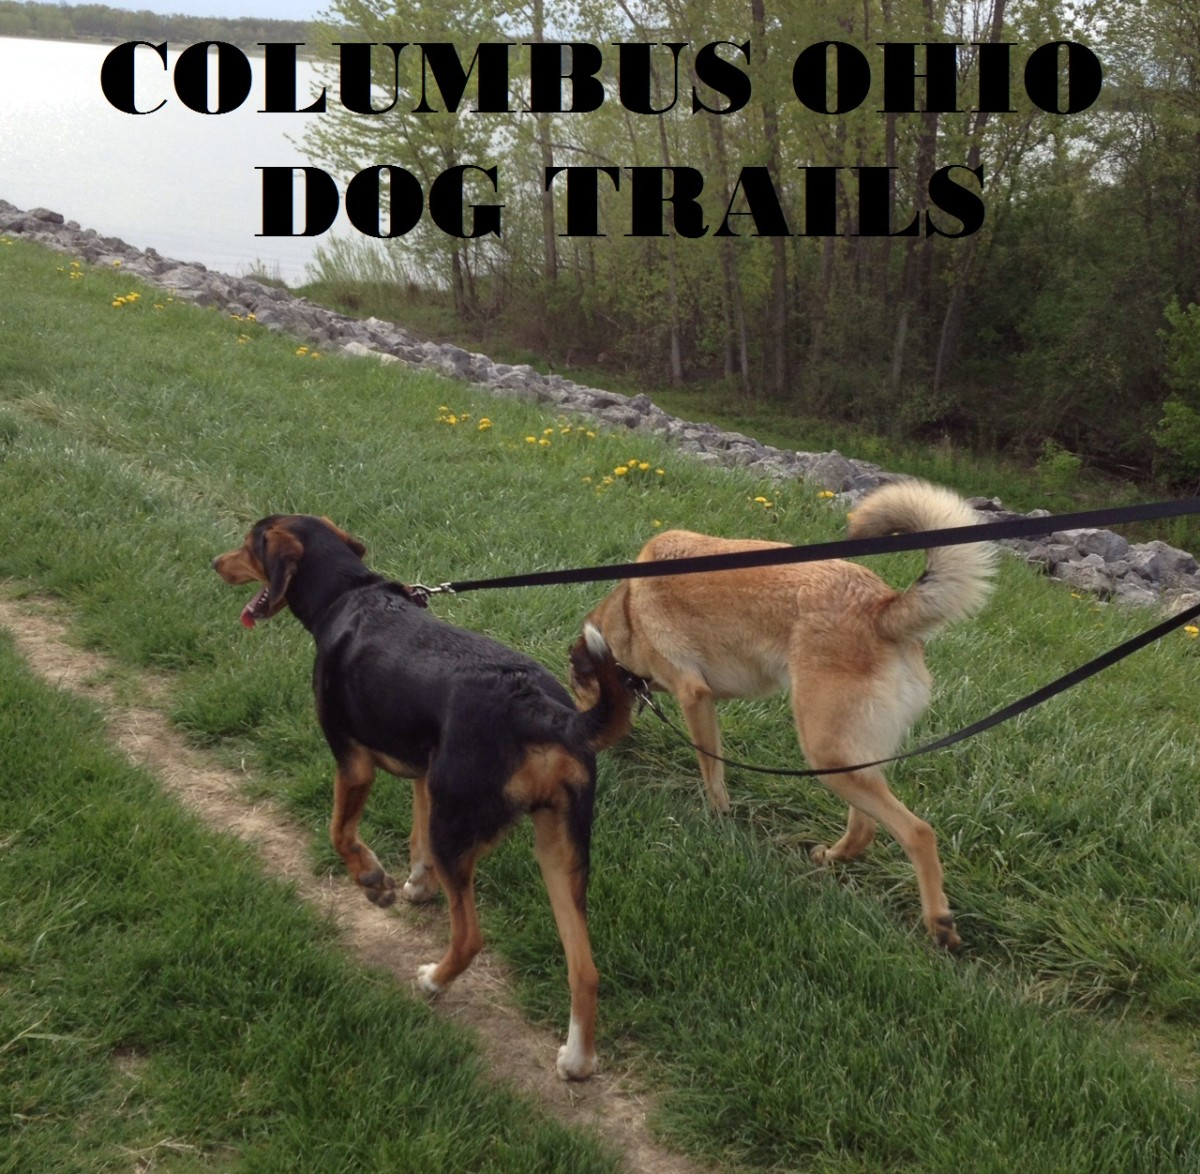 Five Great Places to Hike with your Dog Near Columbus Ohio